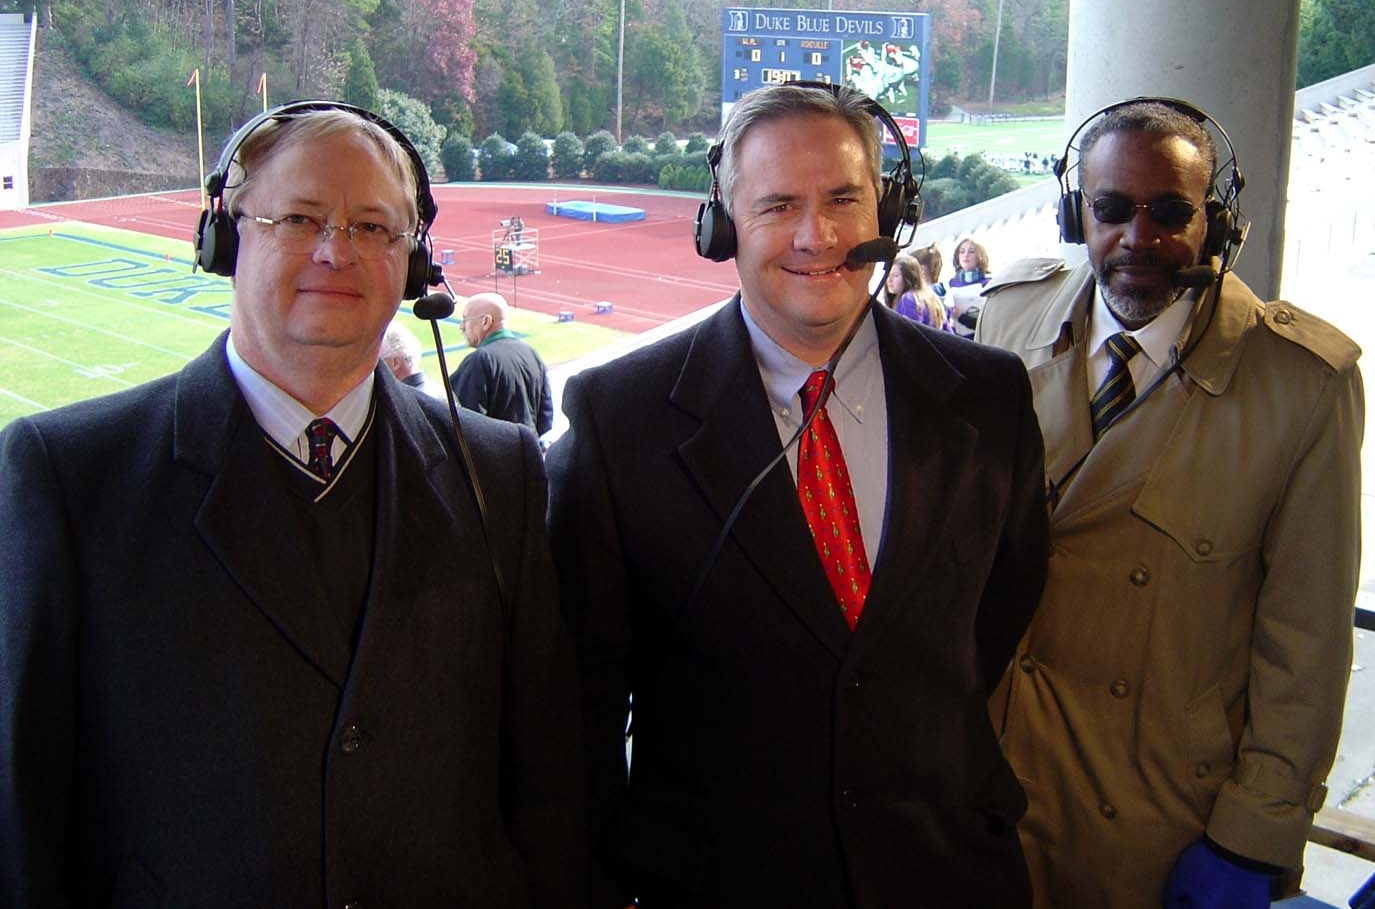 Tim Amos, Doug Piercy, and Lewis Isaac call the 2005 State 3A Football Championship at Duke University